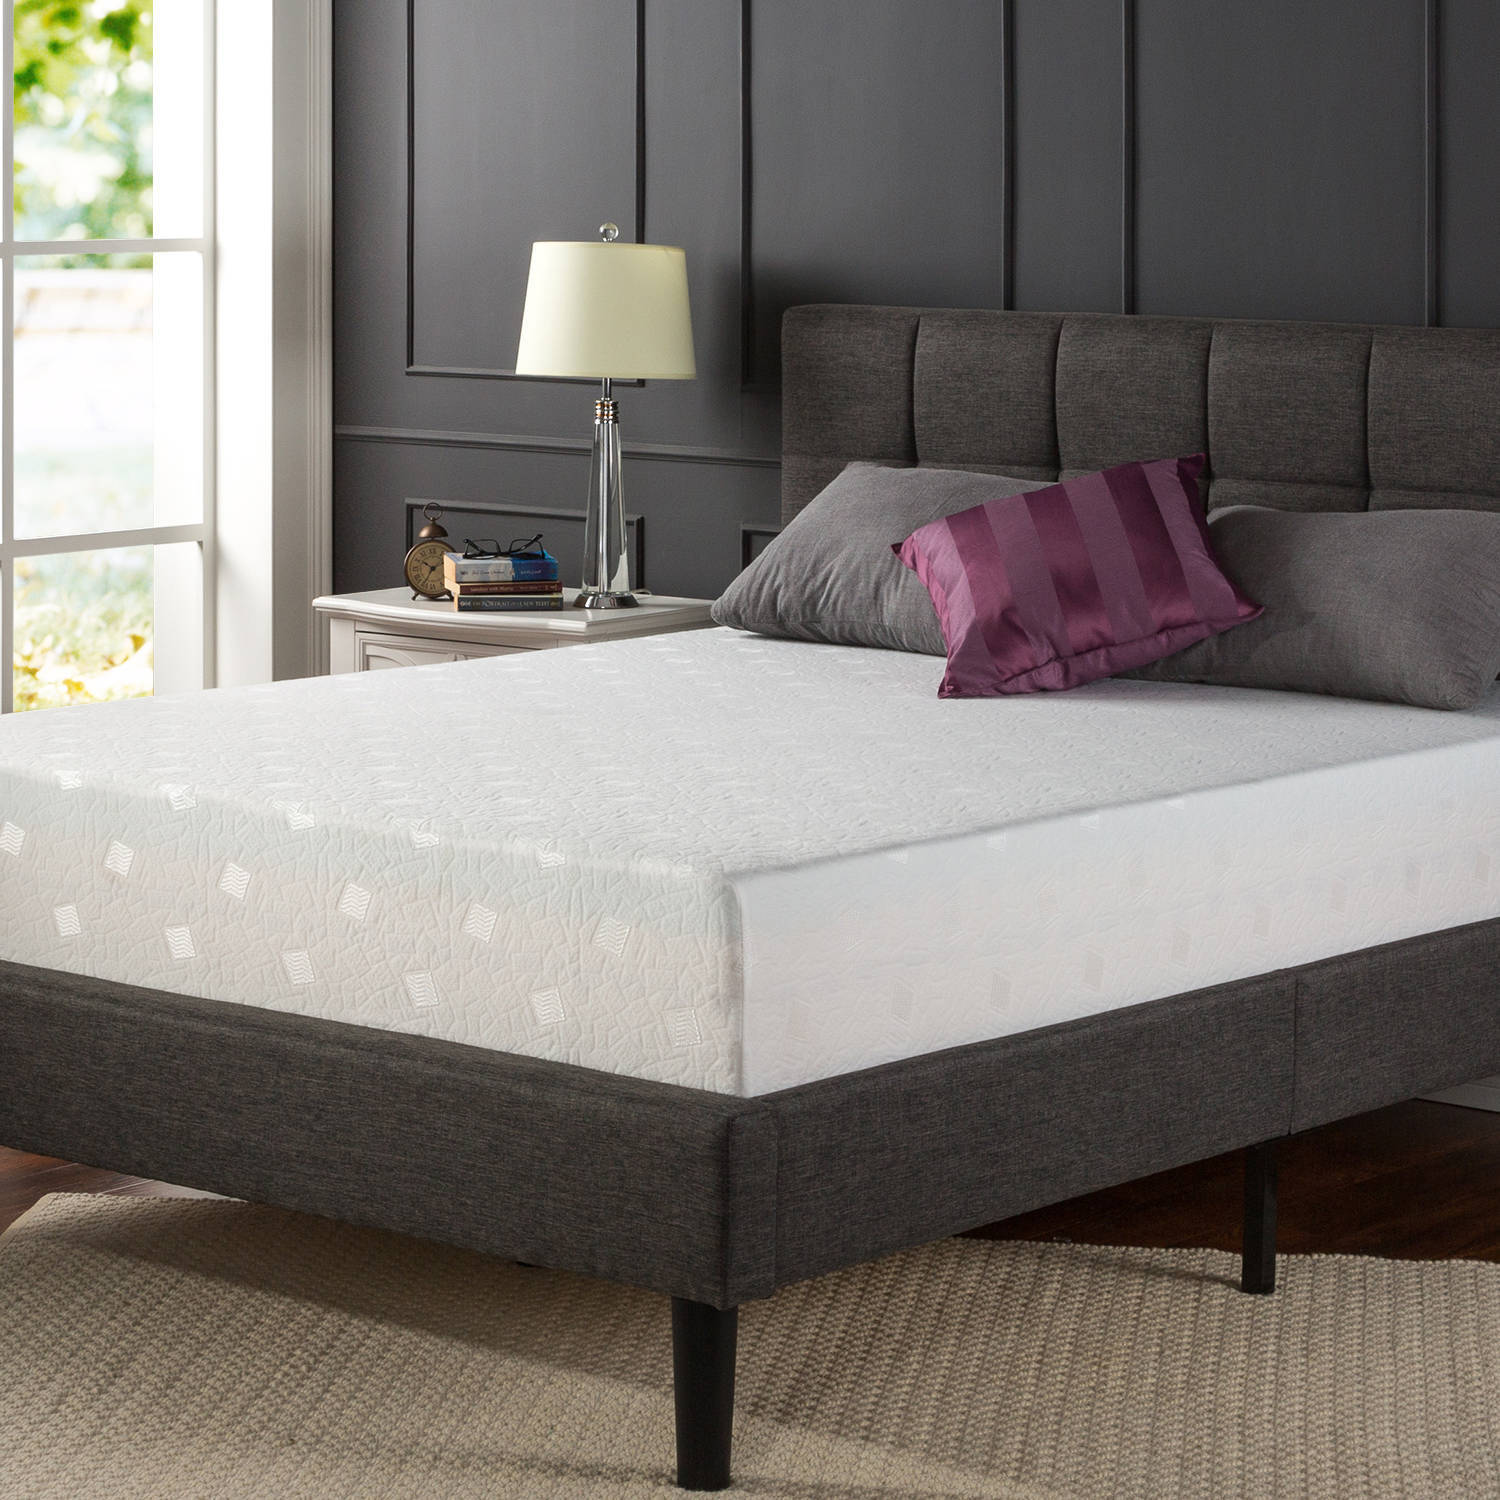 Charmant Queen Size Tempurpedic Mattress. Queen Size Tempurpedic Mattress :